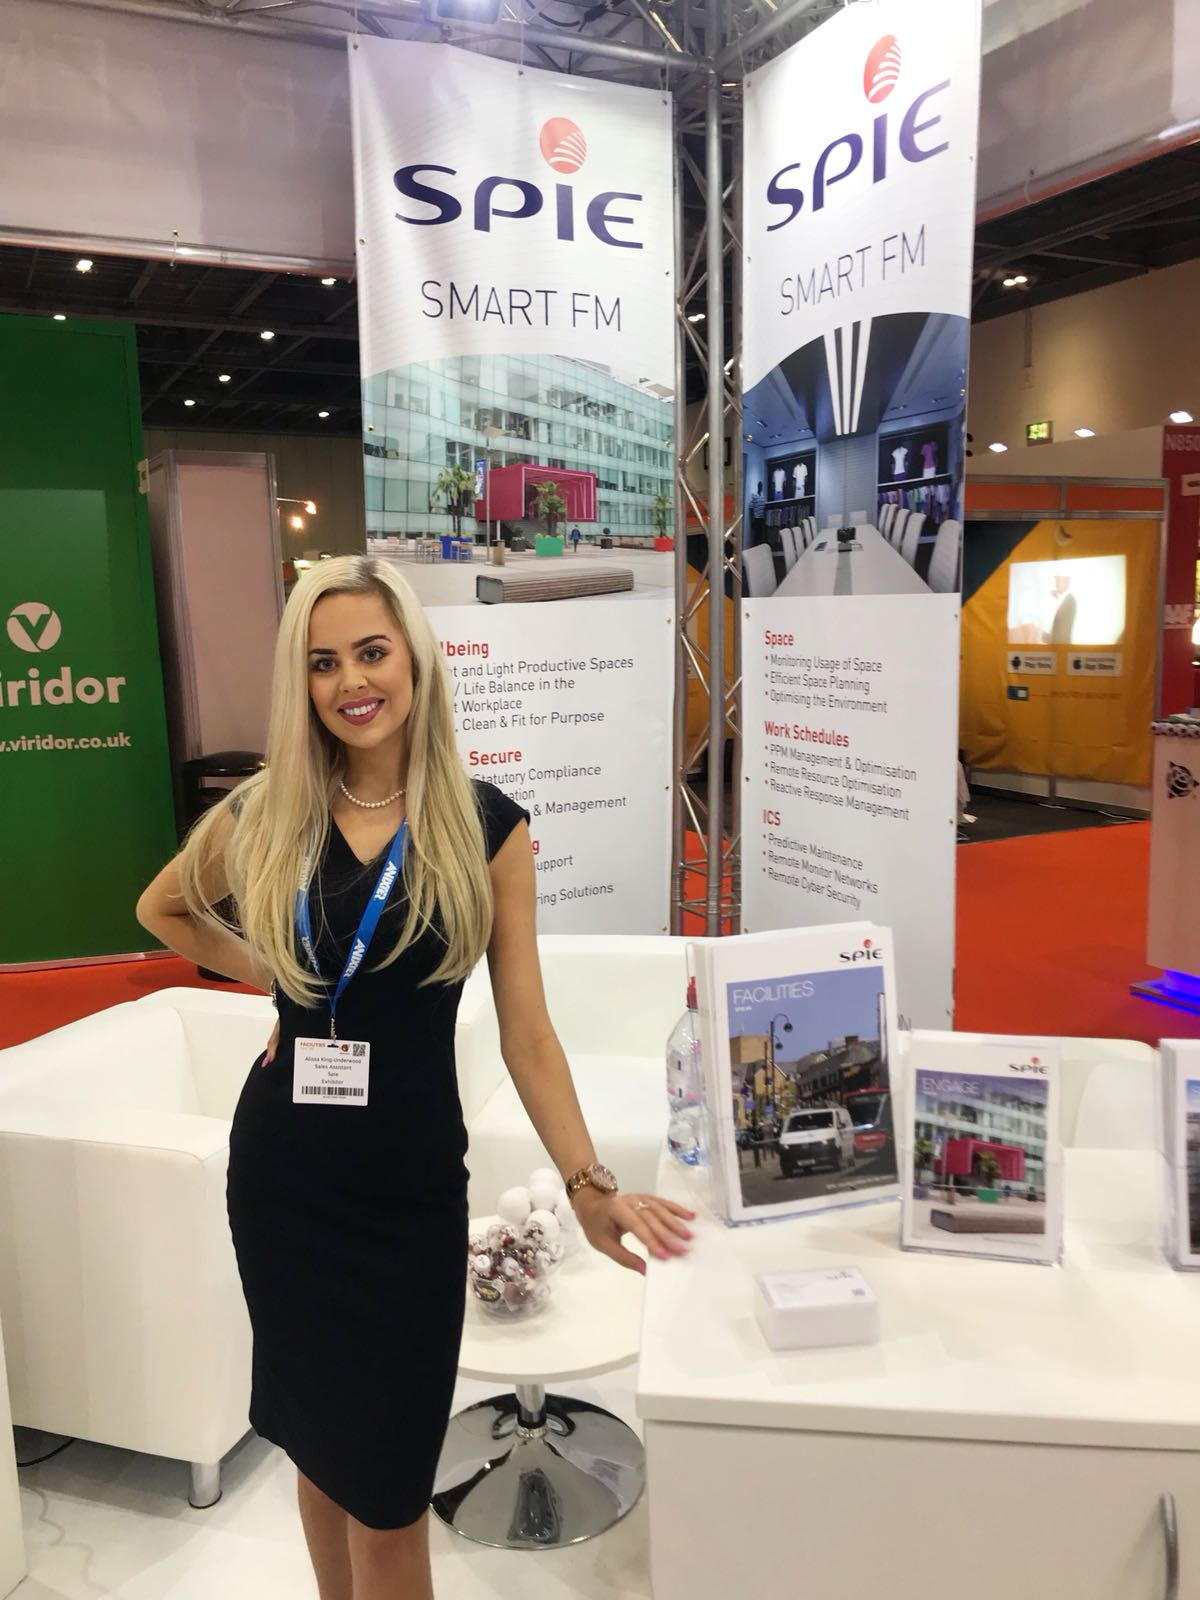 Promotional Model with Spie for Facilities Show on 19th till 21st June